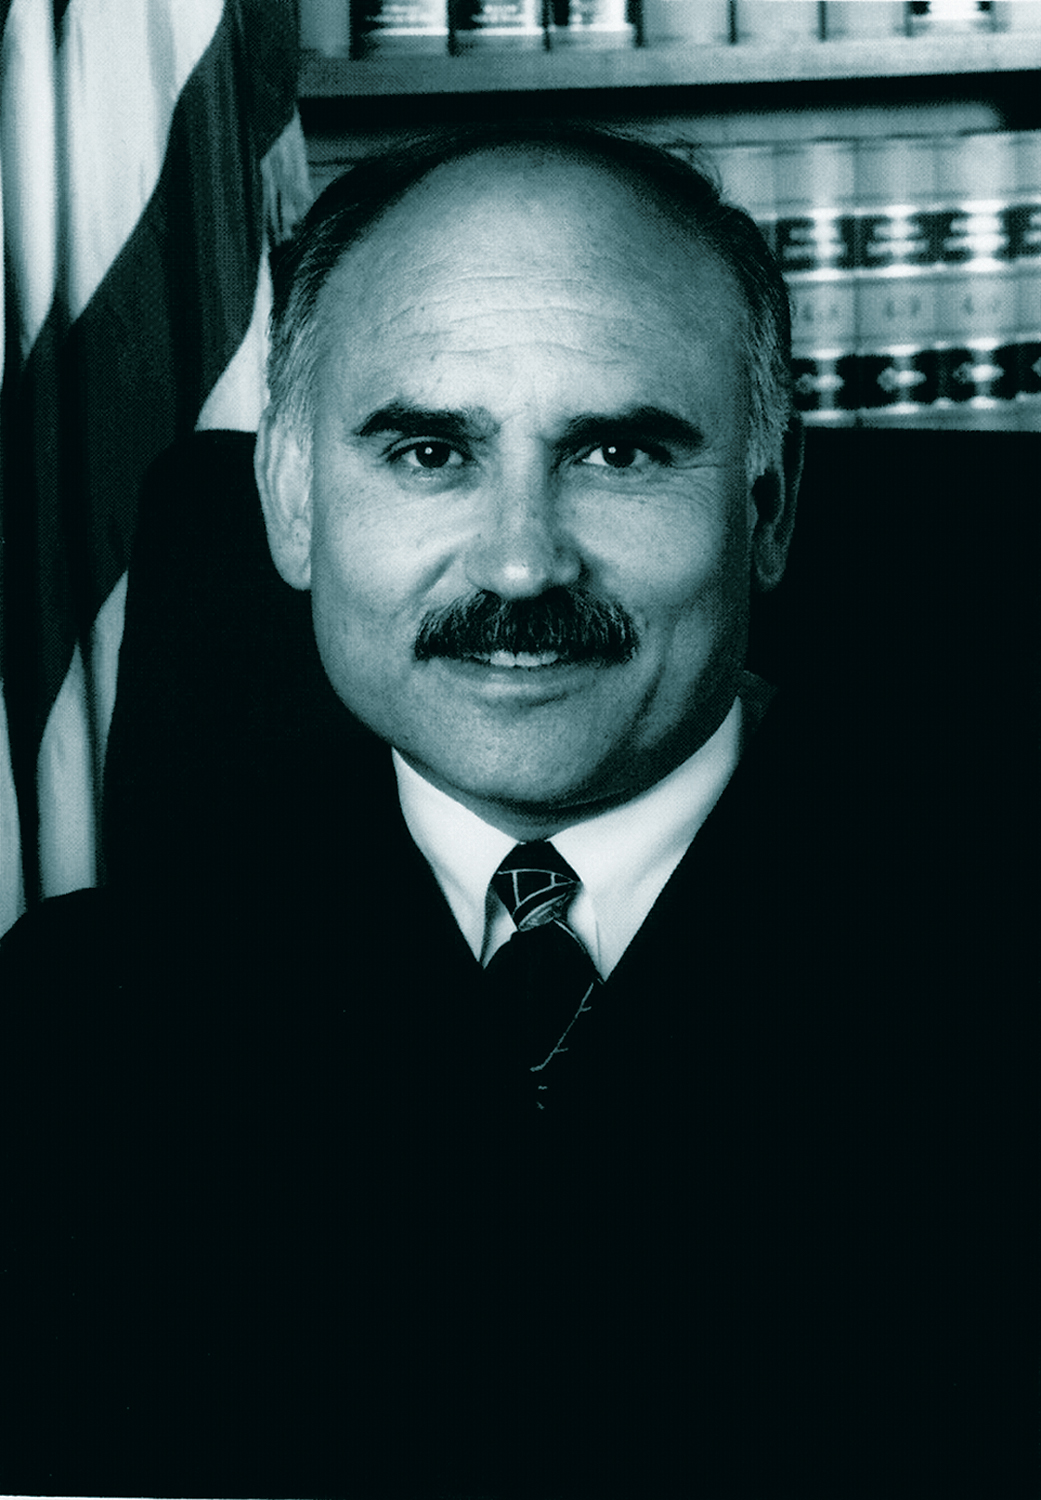 Judge Richard A. Paez